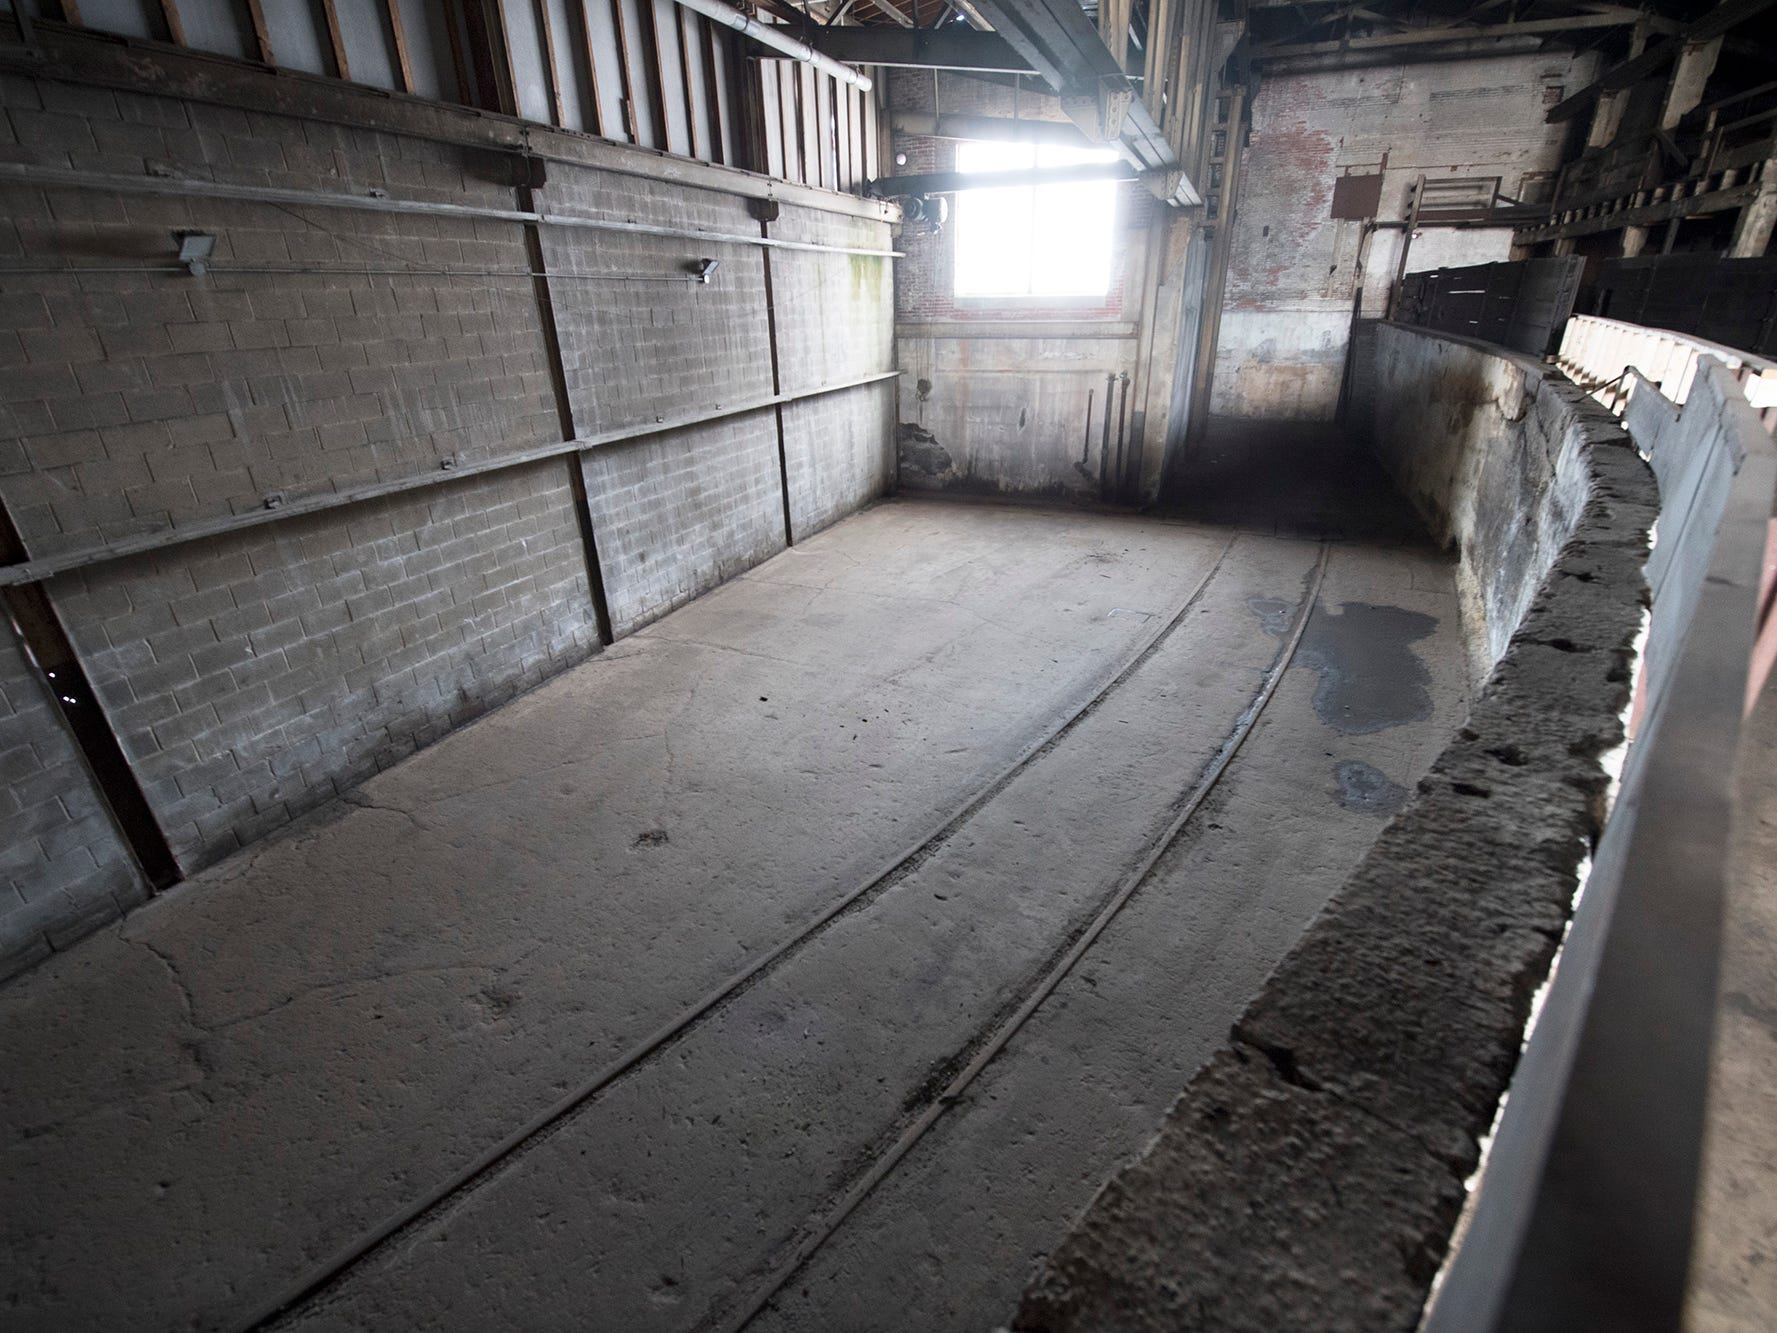 A railroad spur enters the foundry building at 145 North Hartley Street in York. The 54,000-square-foot building has been gutted and refurbished however, no initial plans have been made for the site.